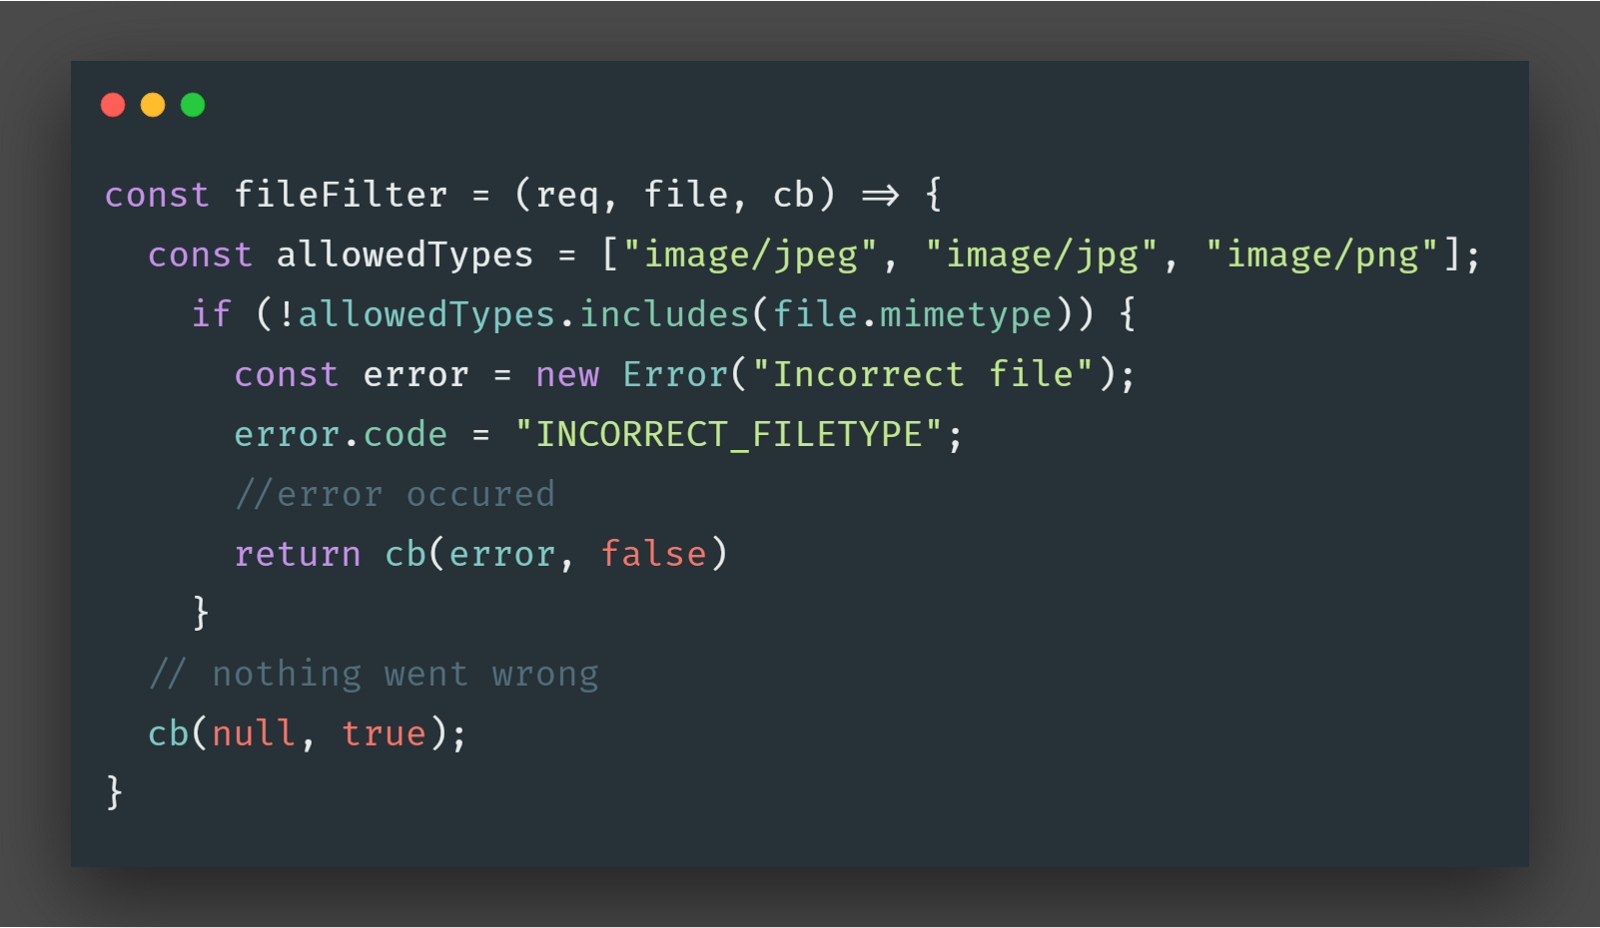 fileFilter function